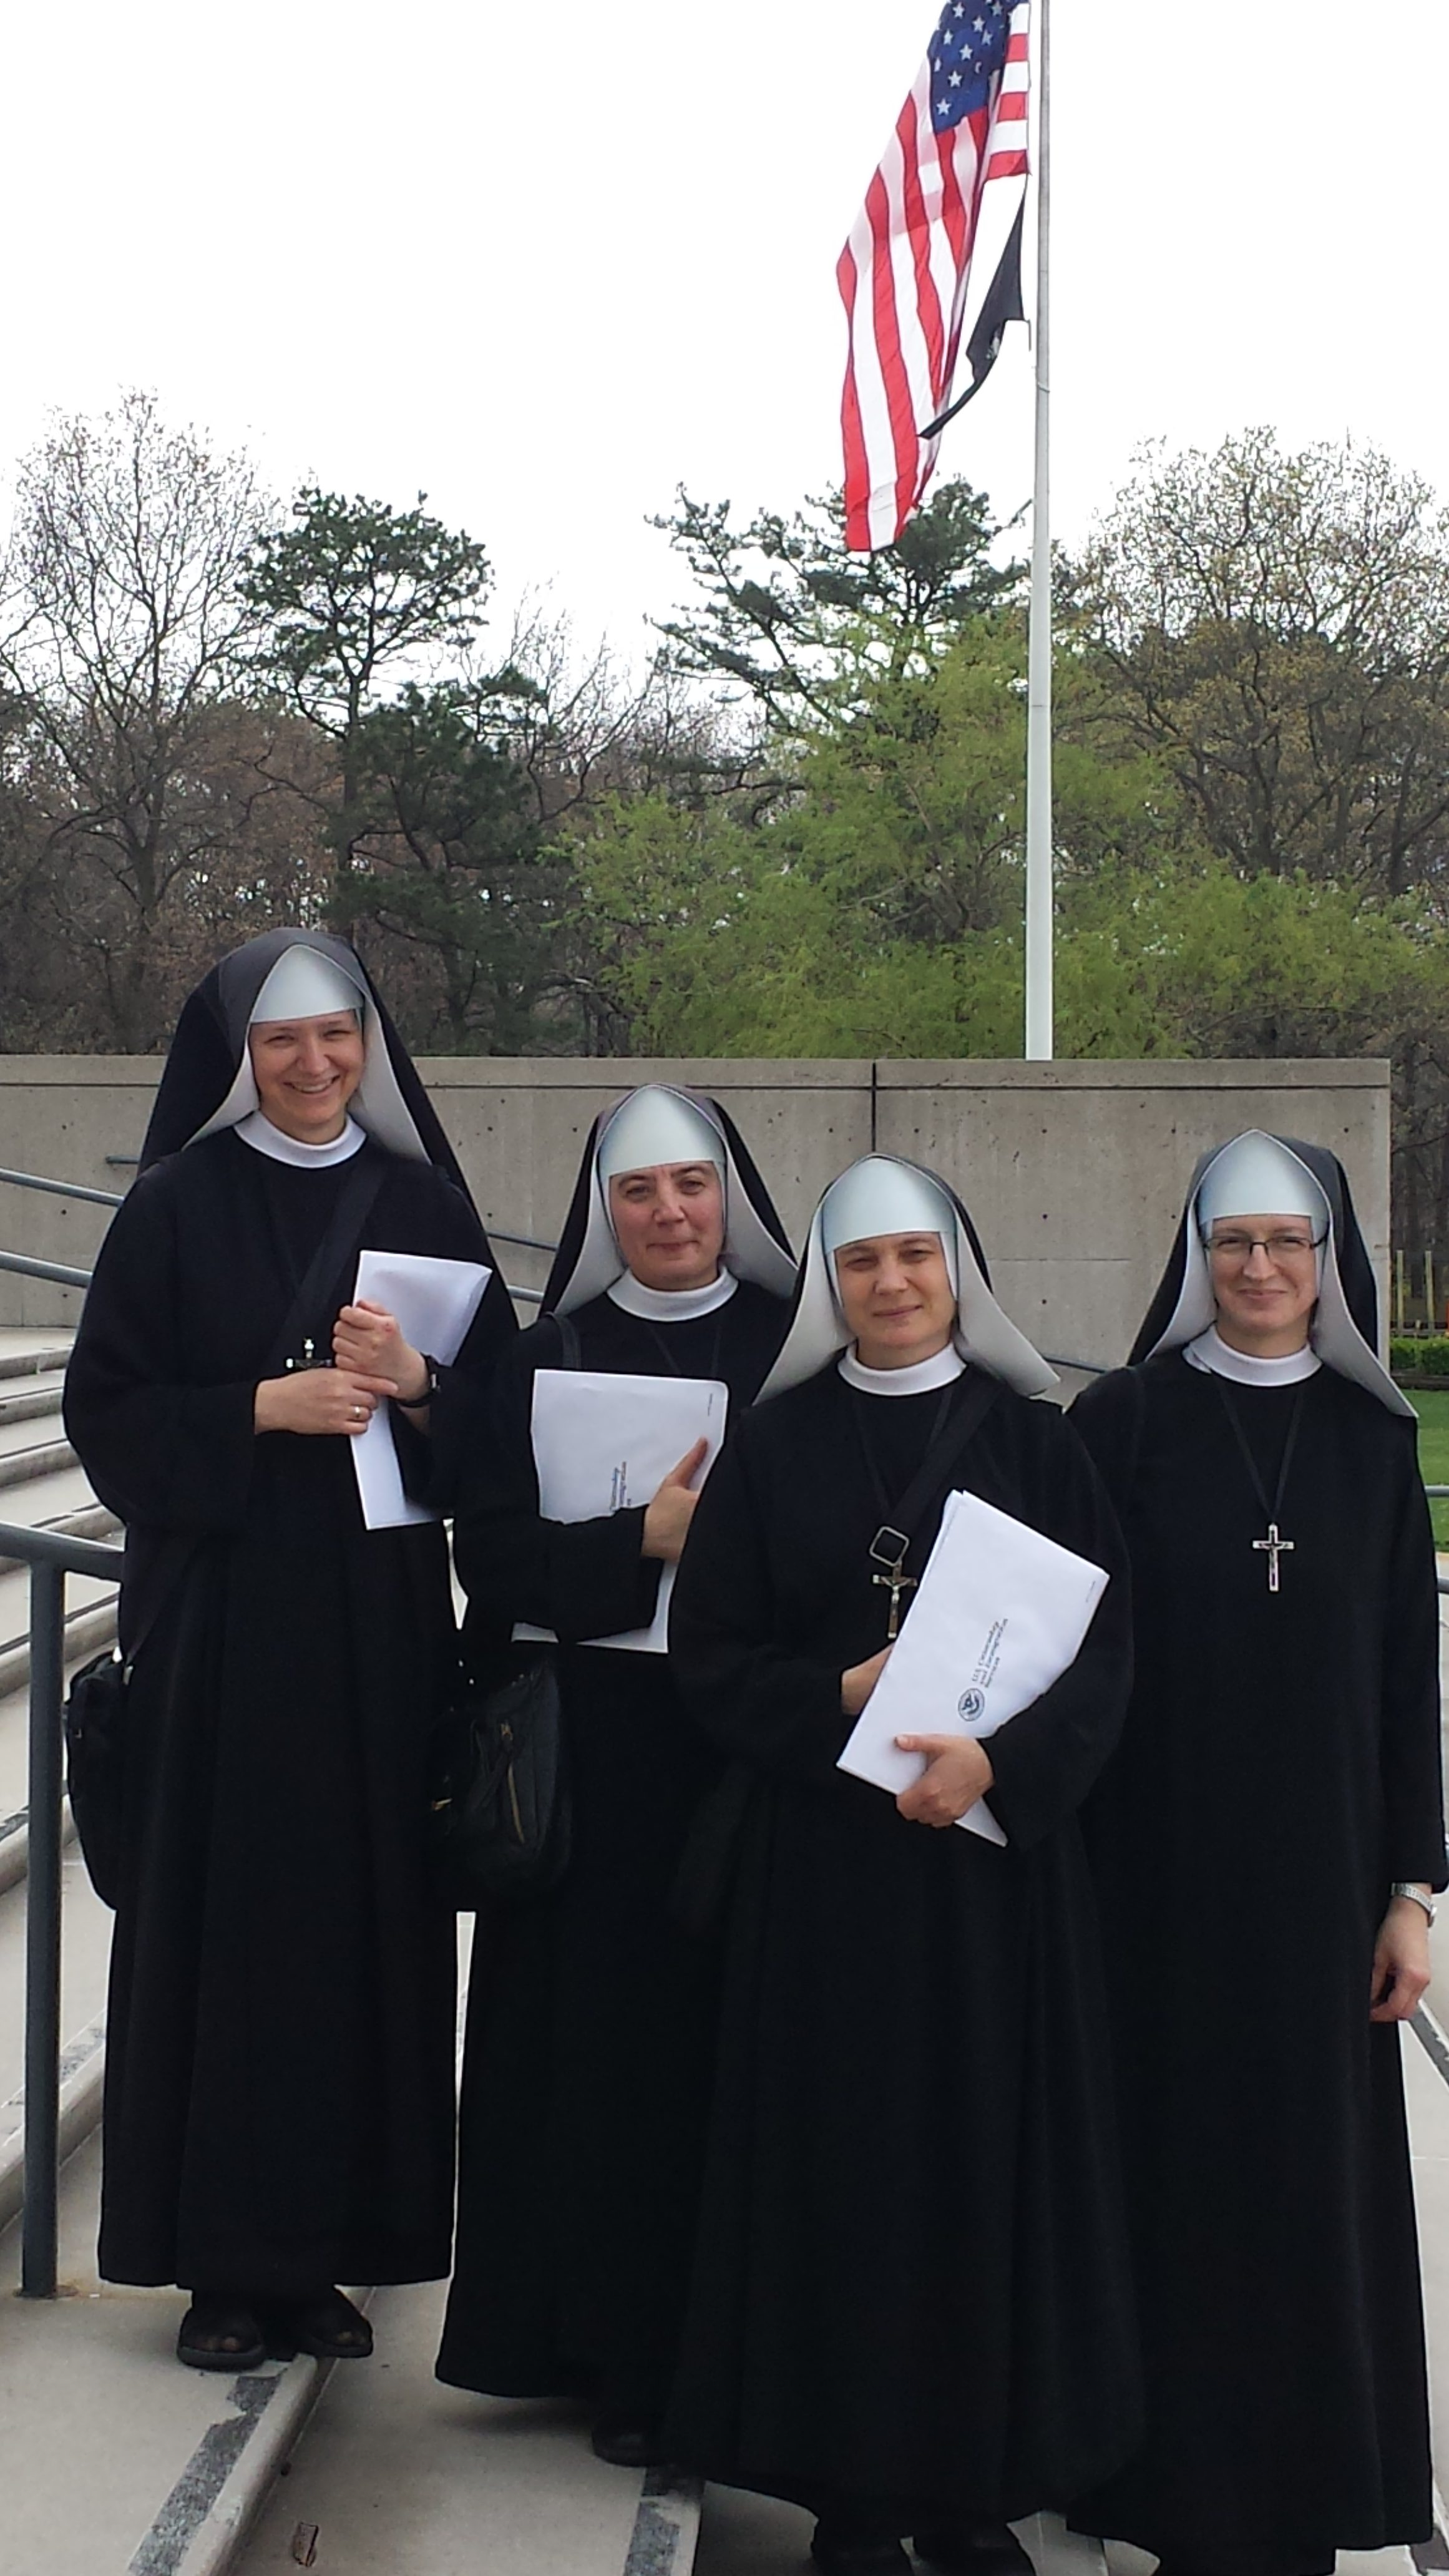 Missionary Sisters of St. Benedict Are U.S. Citizens